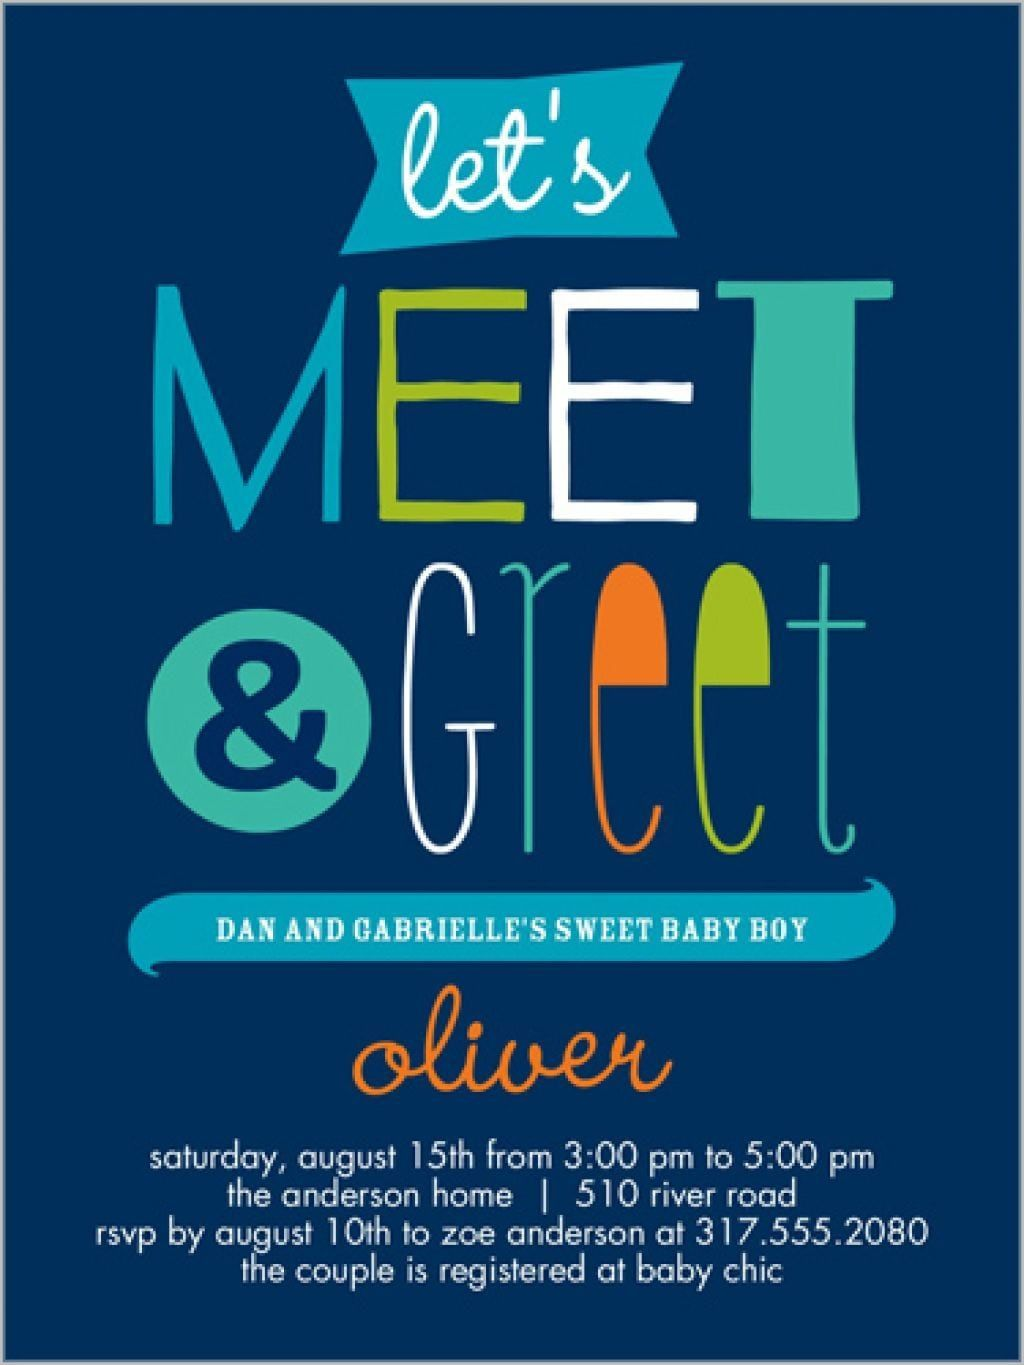 Meet And Greet Invitation   Welcome baby party, Baby shower invitation  cards, Baby shower invitations